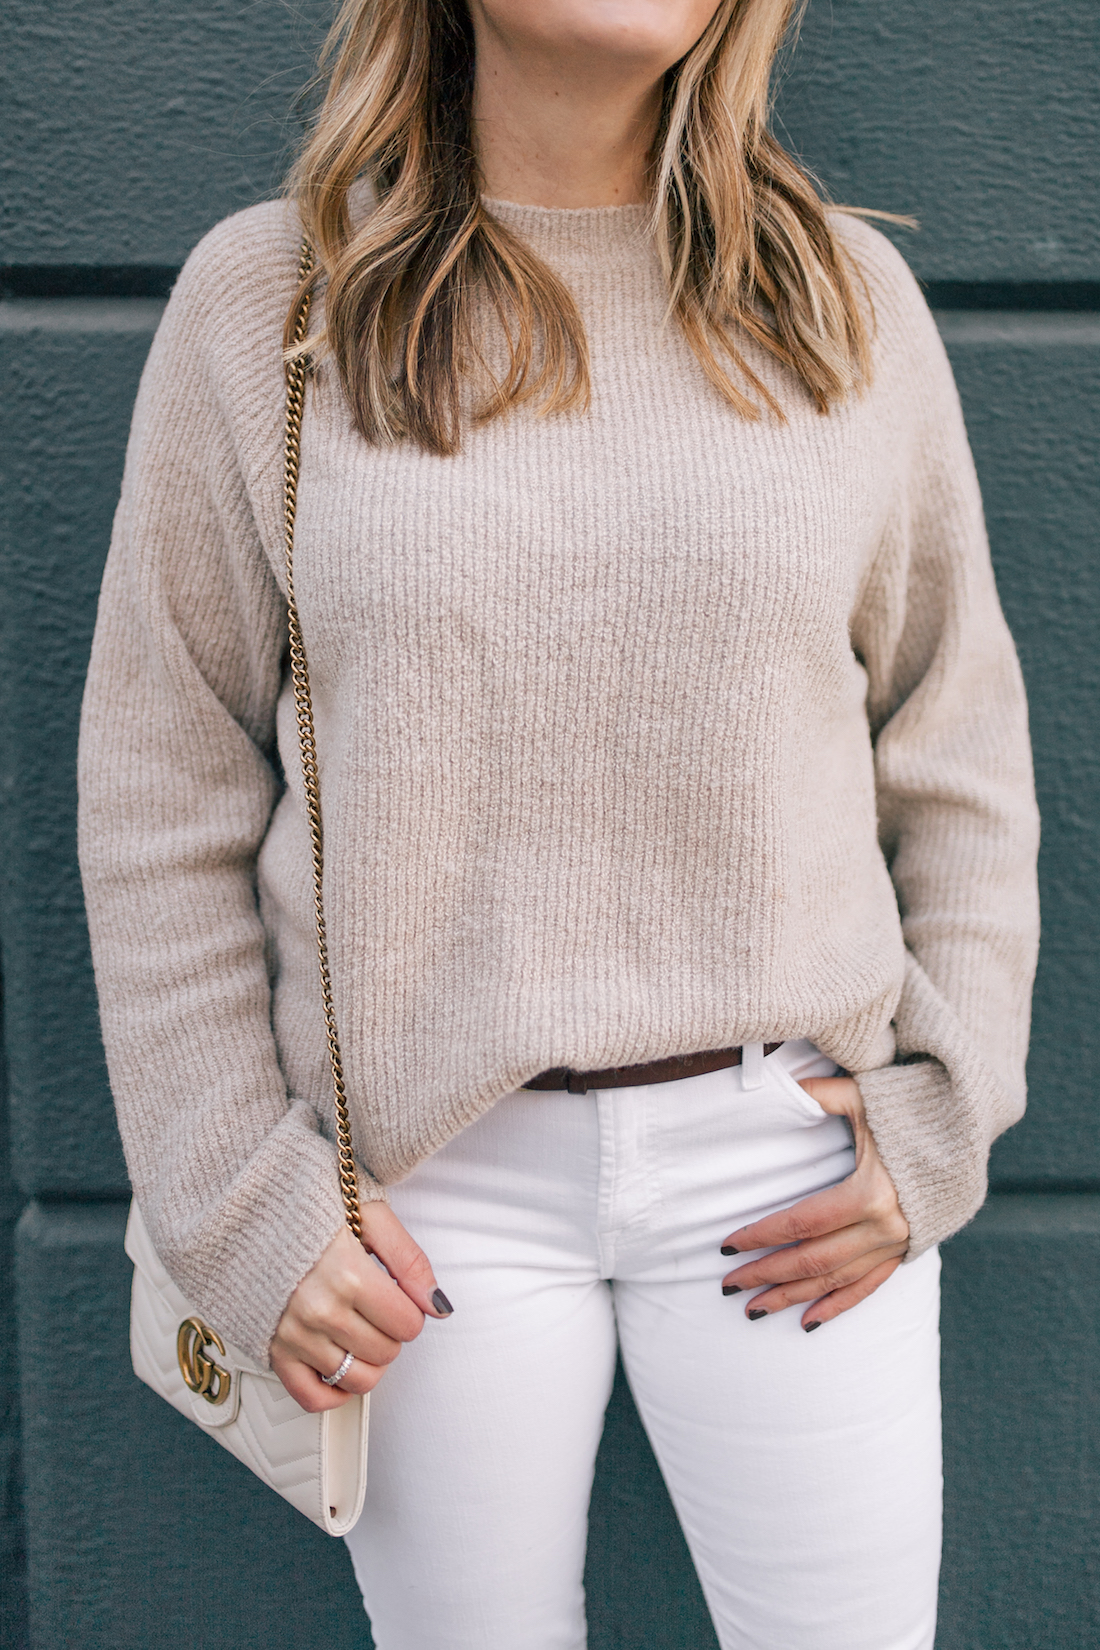 ASOS Sweater // 7 for all Mankind Jeans // J.Crew Belt